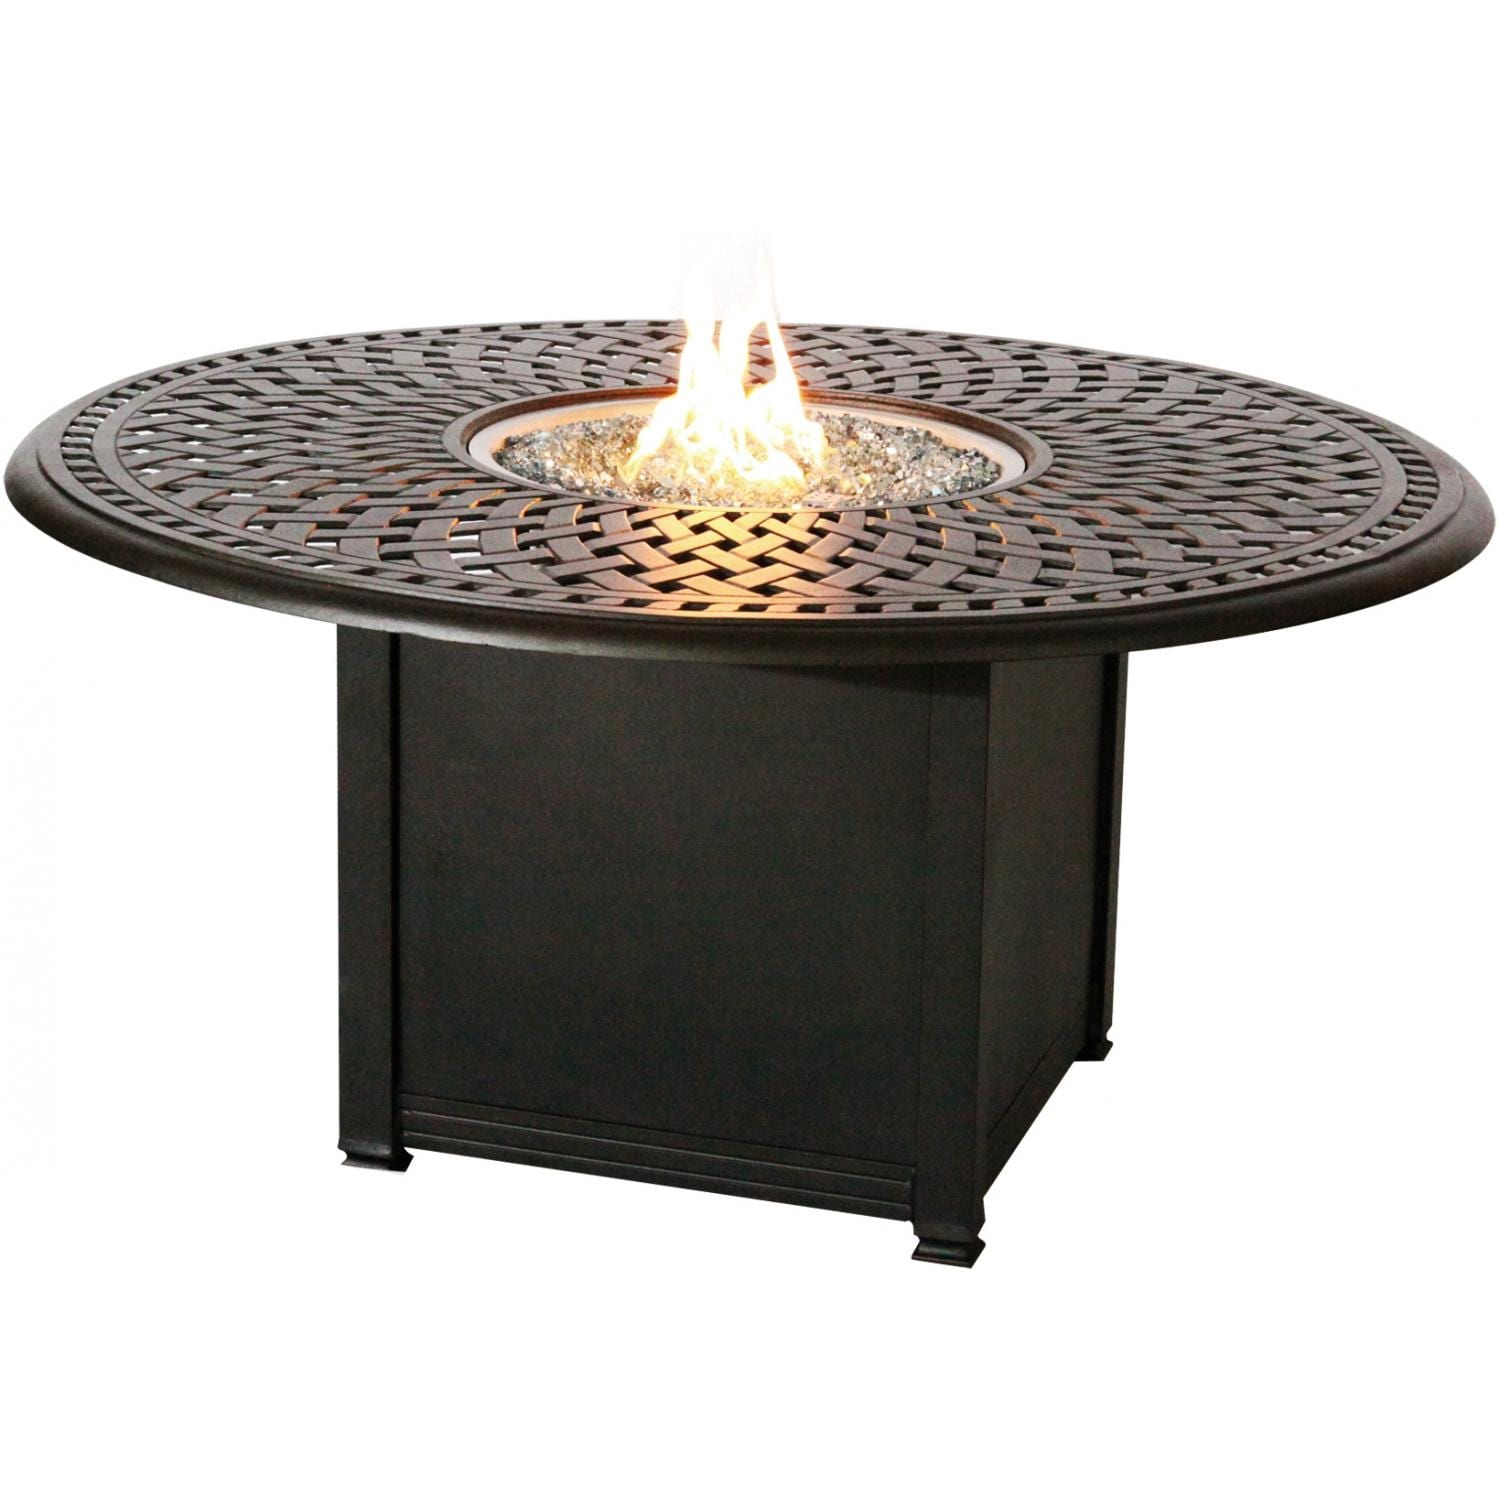 Darlee Vienna Piece Resin Wicker Patio Fire Pit Set - Resin wicker fire pit table